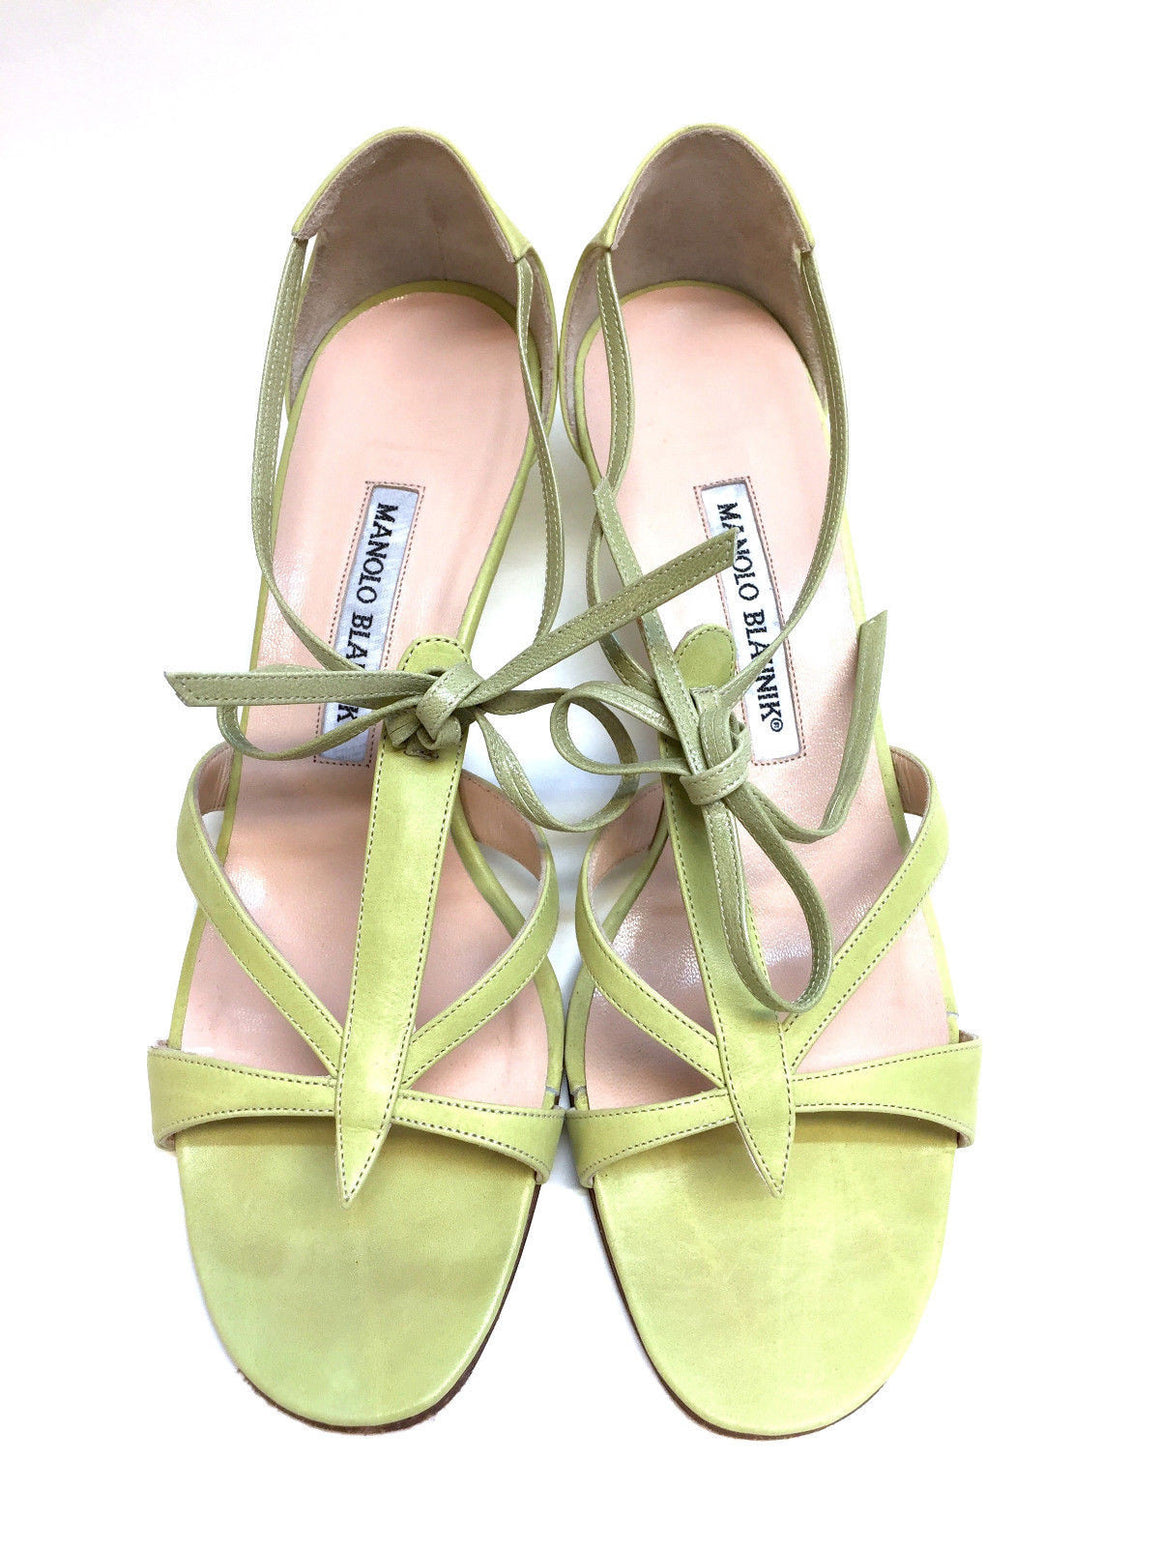 bisbiz.com MANOLO BLAHNIK  Lime-Green Leather Open-Toe T-Strap Kitten Heel Sandals  Size: 38.5 / 8.5 - Bis Luxury Resale